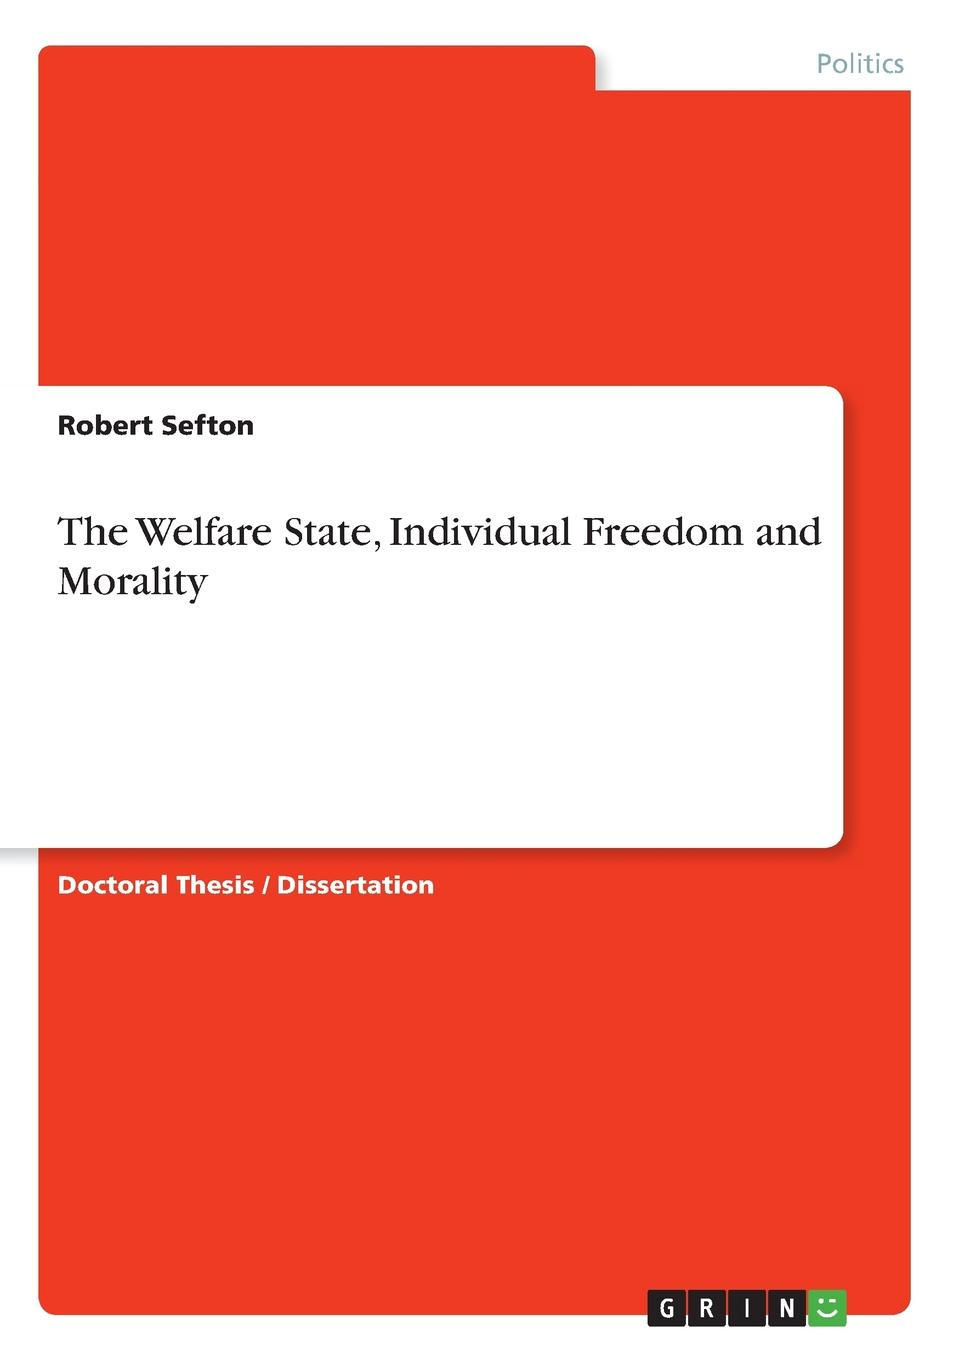 Robert Sefton The Welfare State, Individual Freedom and Morality